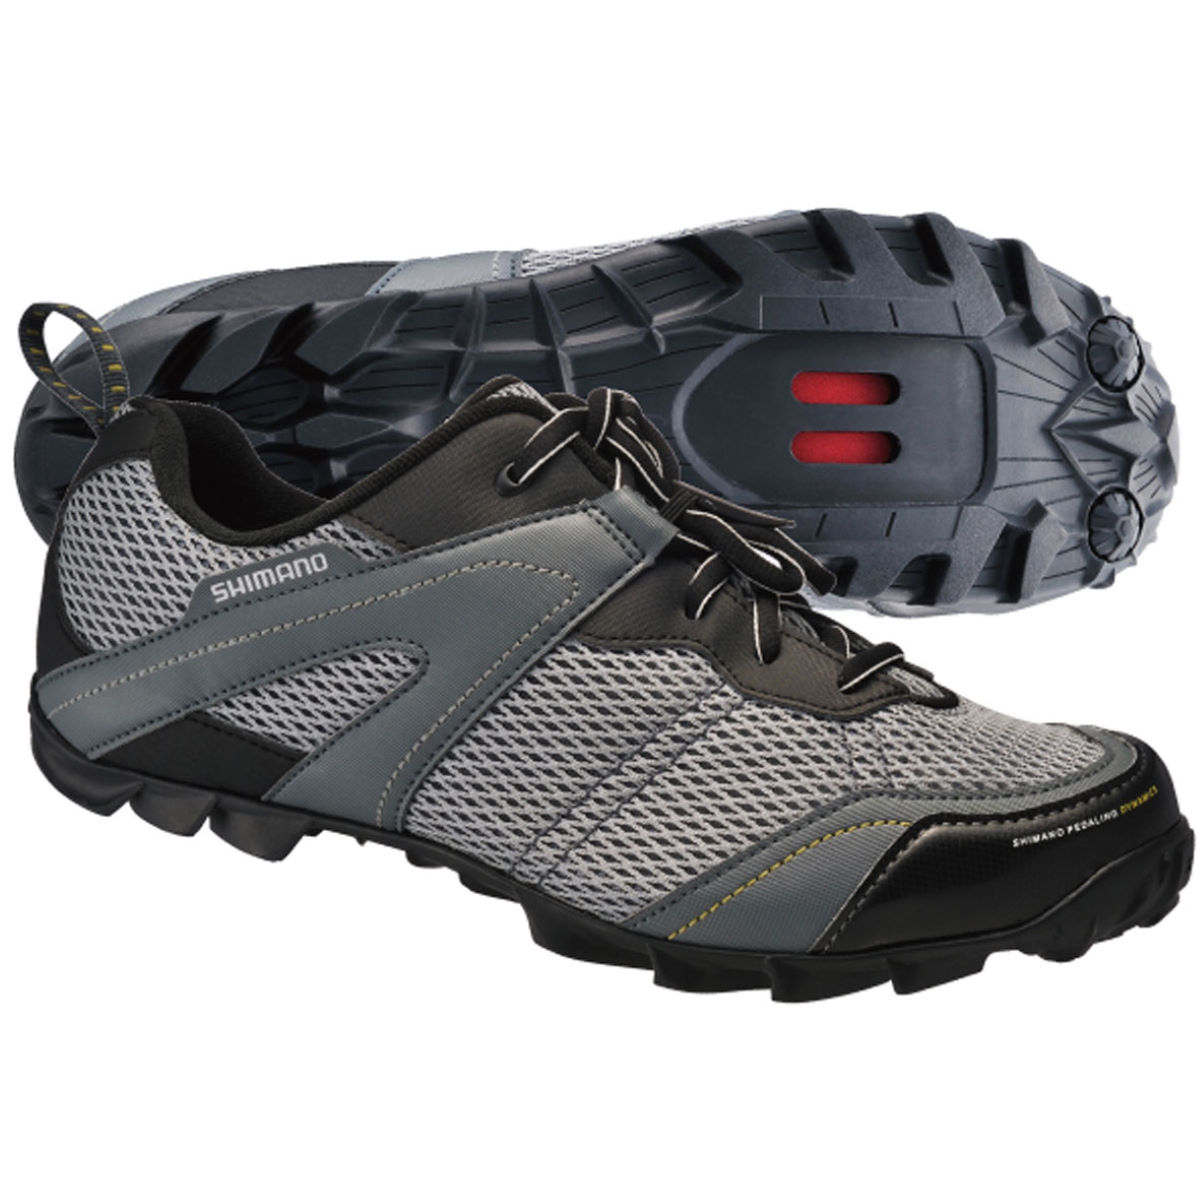 Shimano MT23 Trail/Touring Shoes 2013